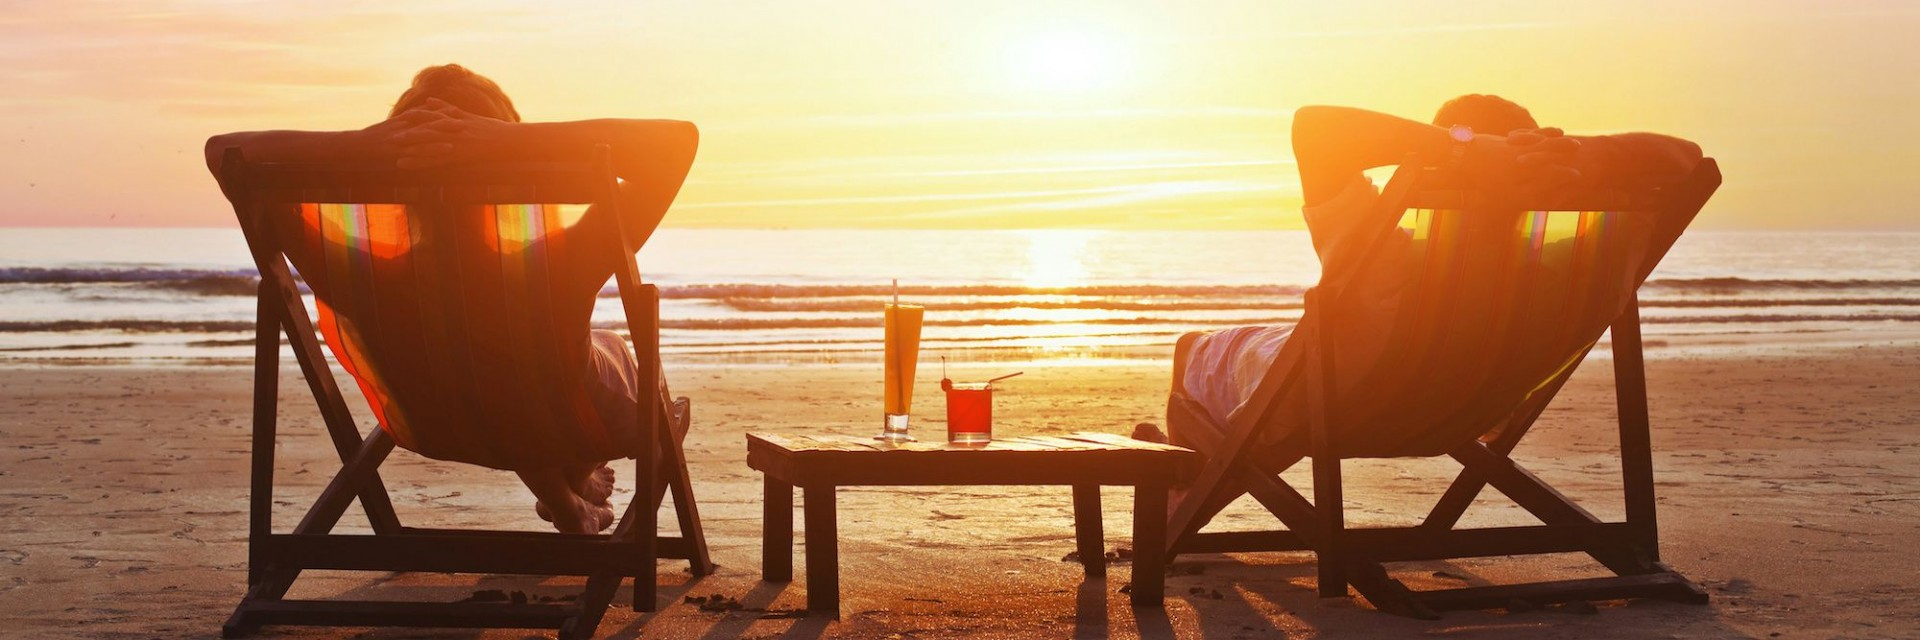 A couple sitting on a beach in front of a beautiful sunset on their vacation. Cocktail glasses between them